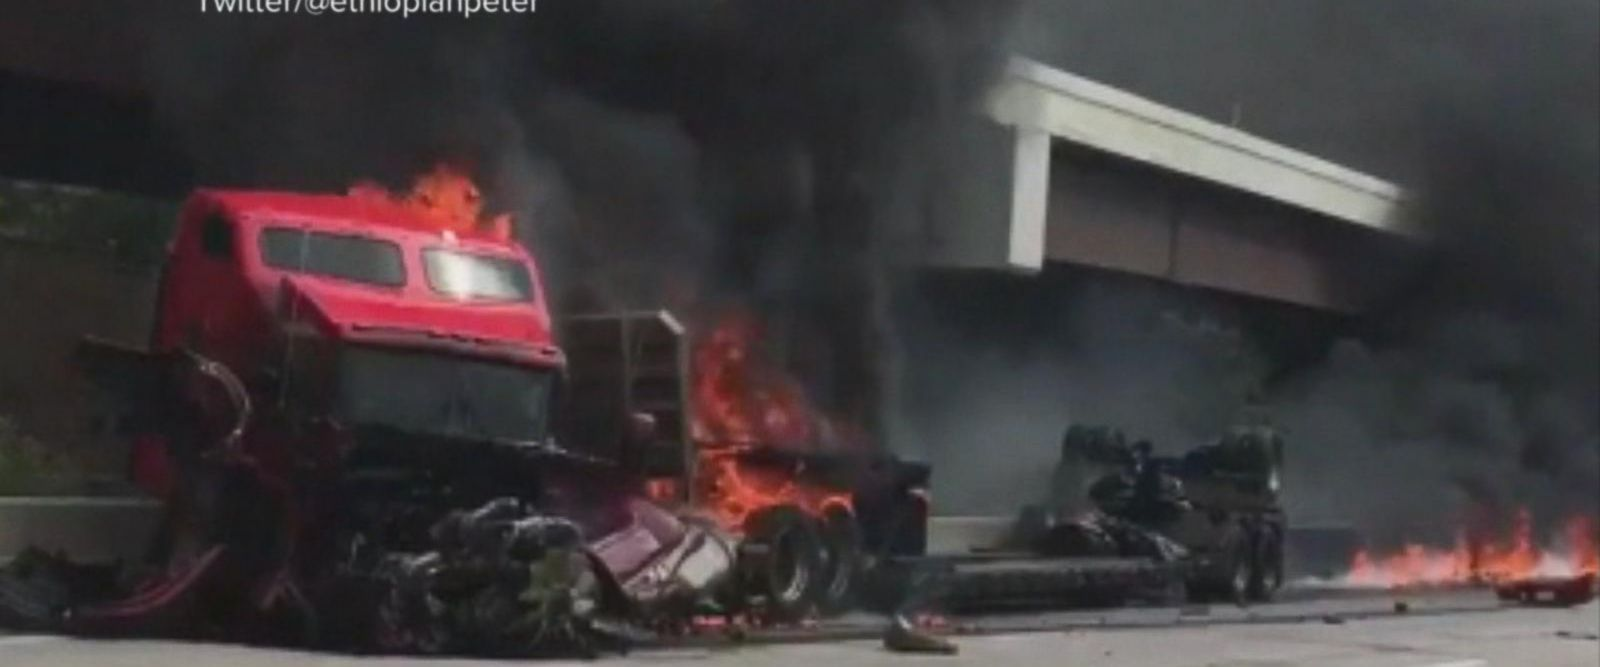 VIDEO: Fiery crash snarls traffic in Kansas City, Missouri